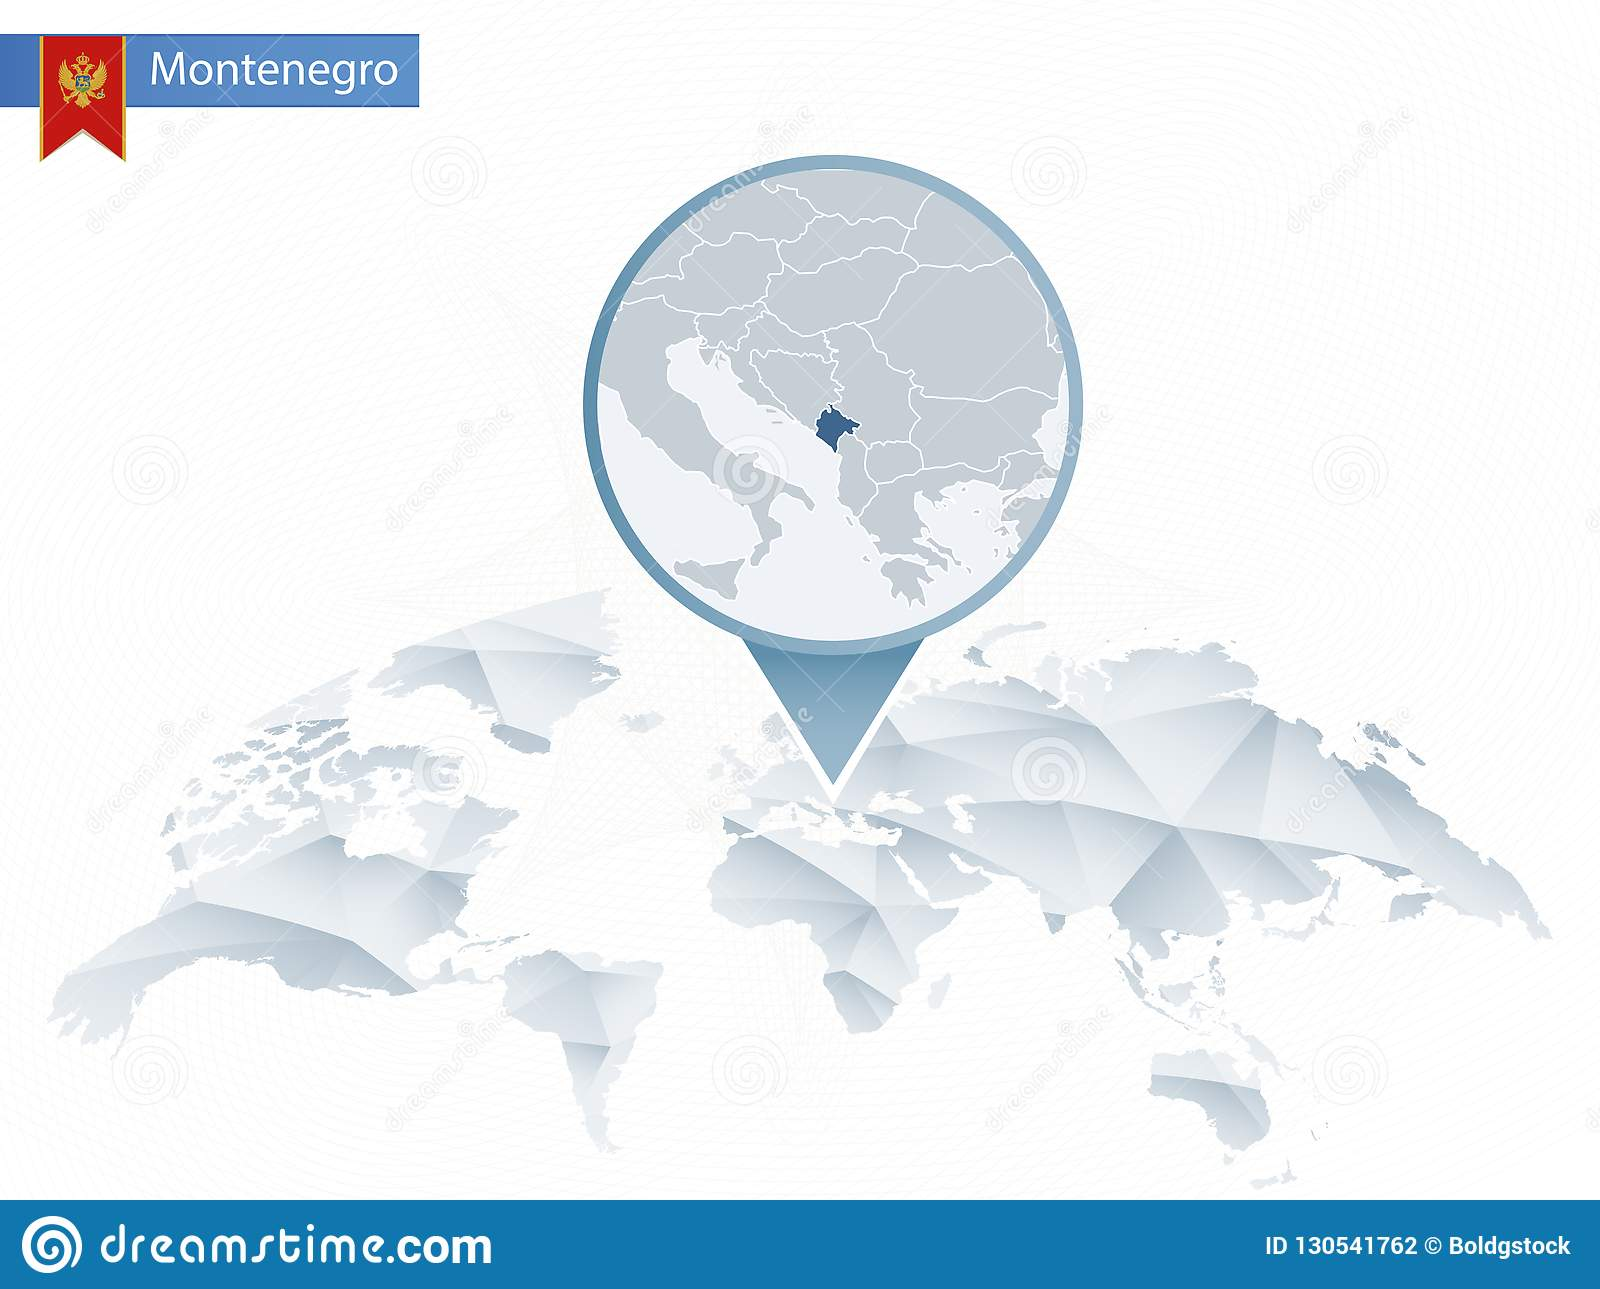 Abstract Rounded World Map With Pinned Detailed Montenegro Map